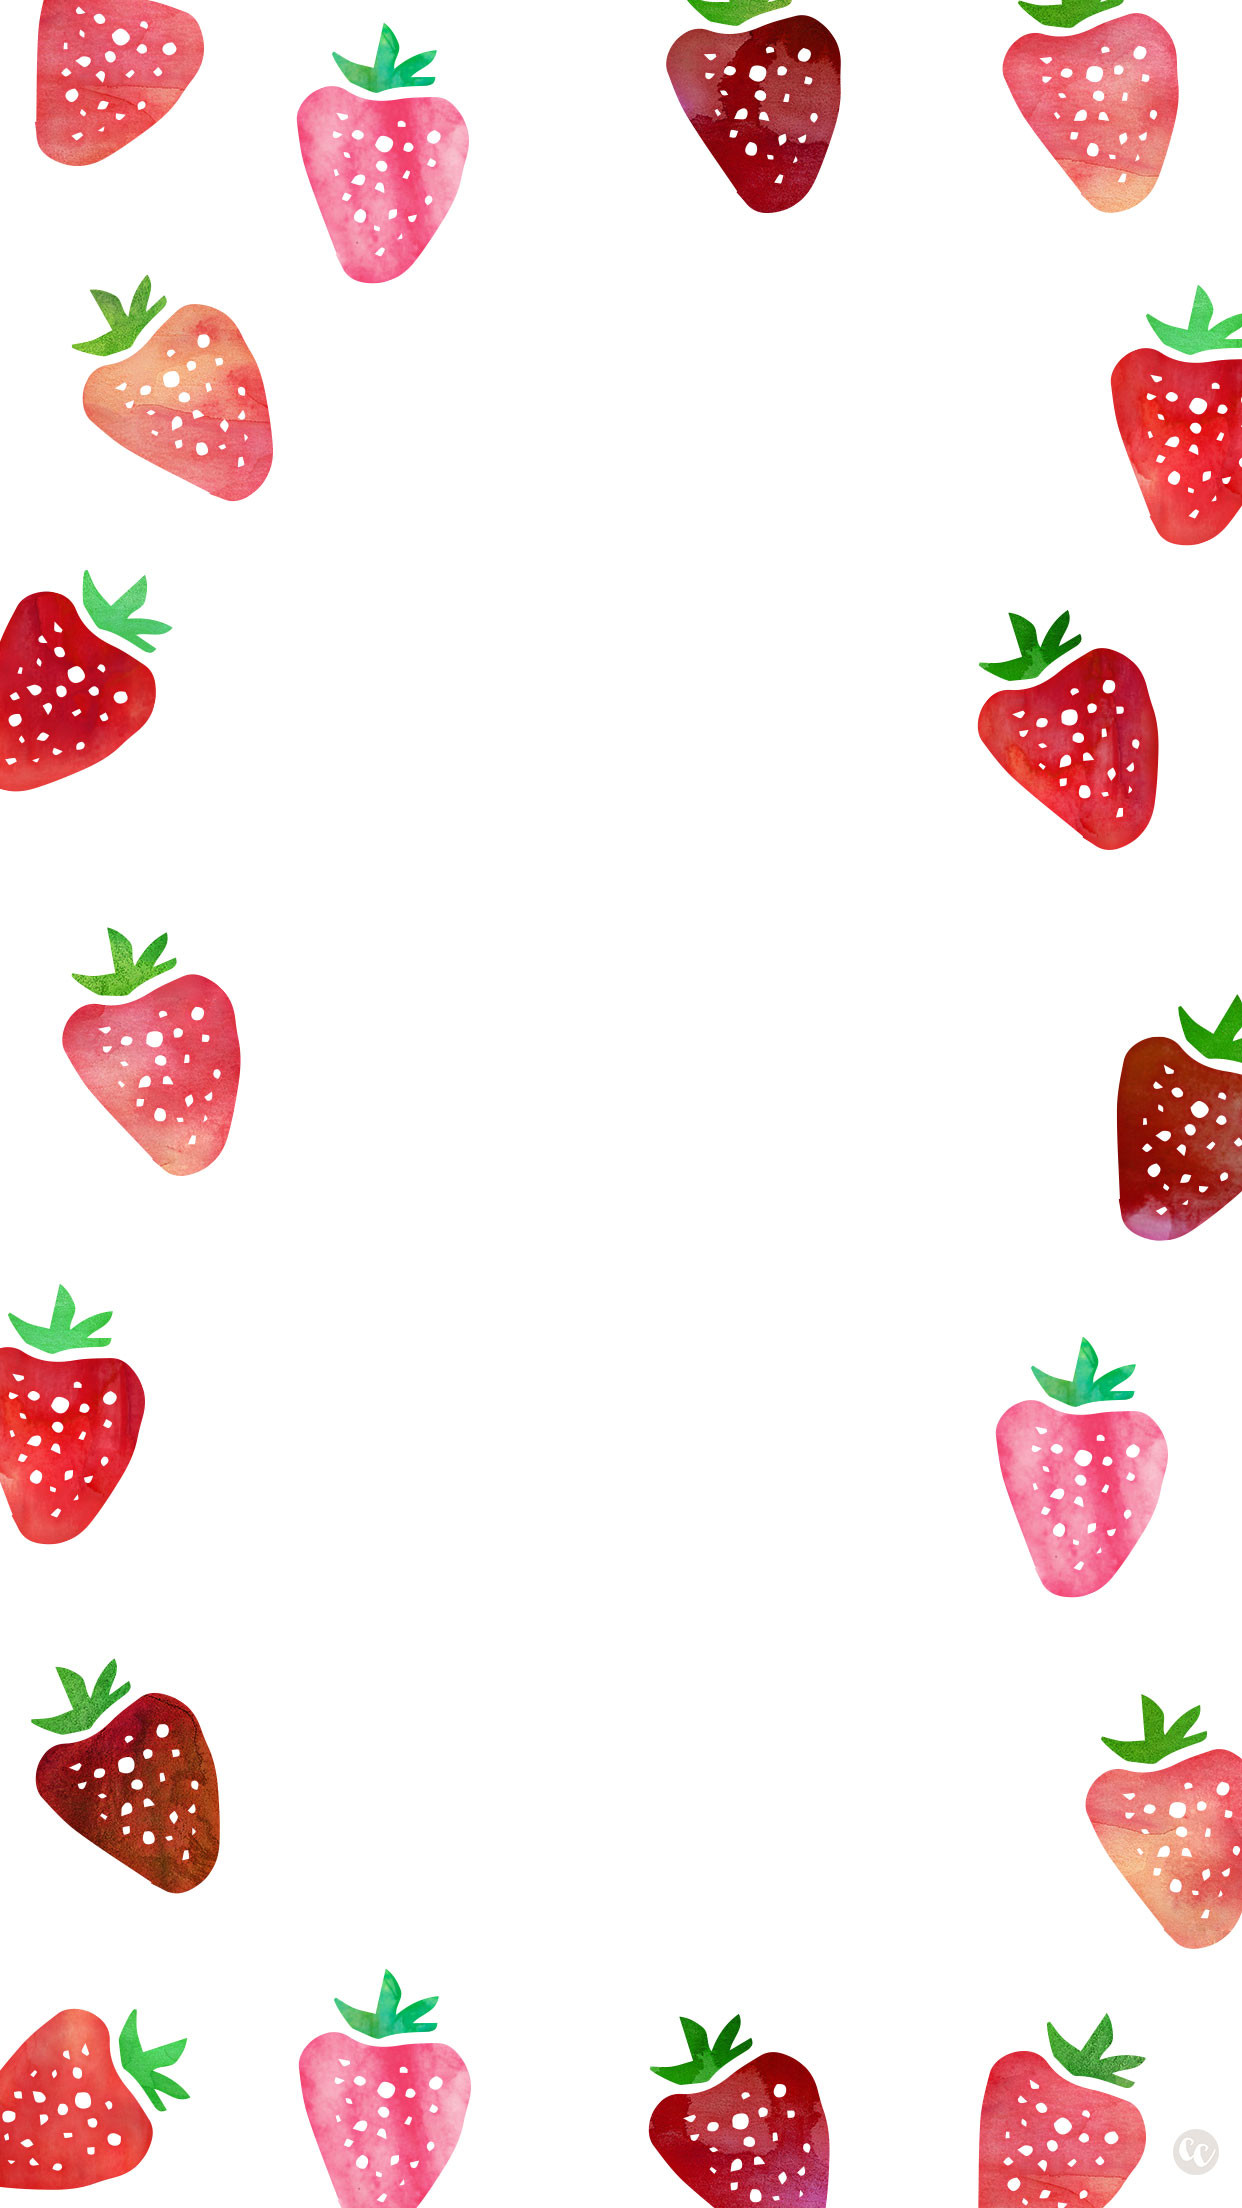 strawberry shortcake backgrounds 183��